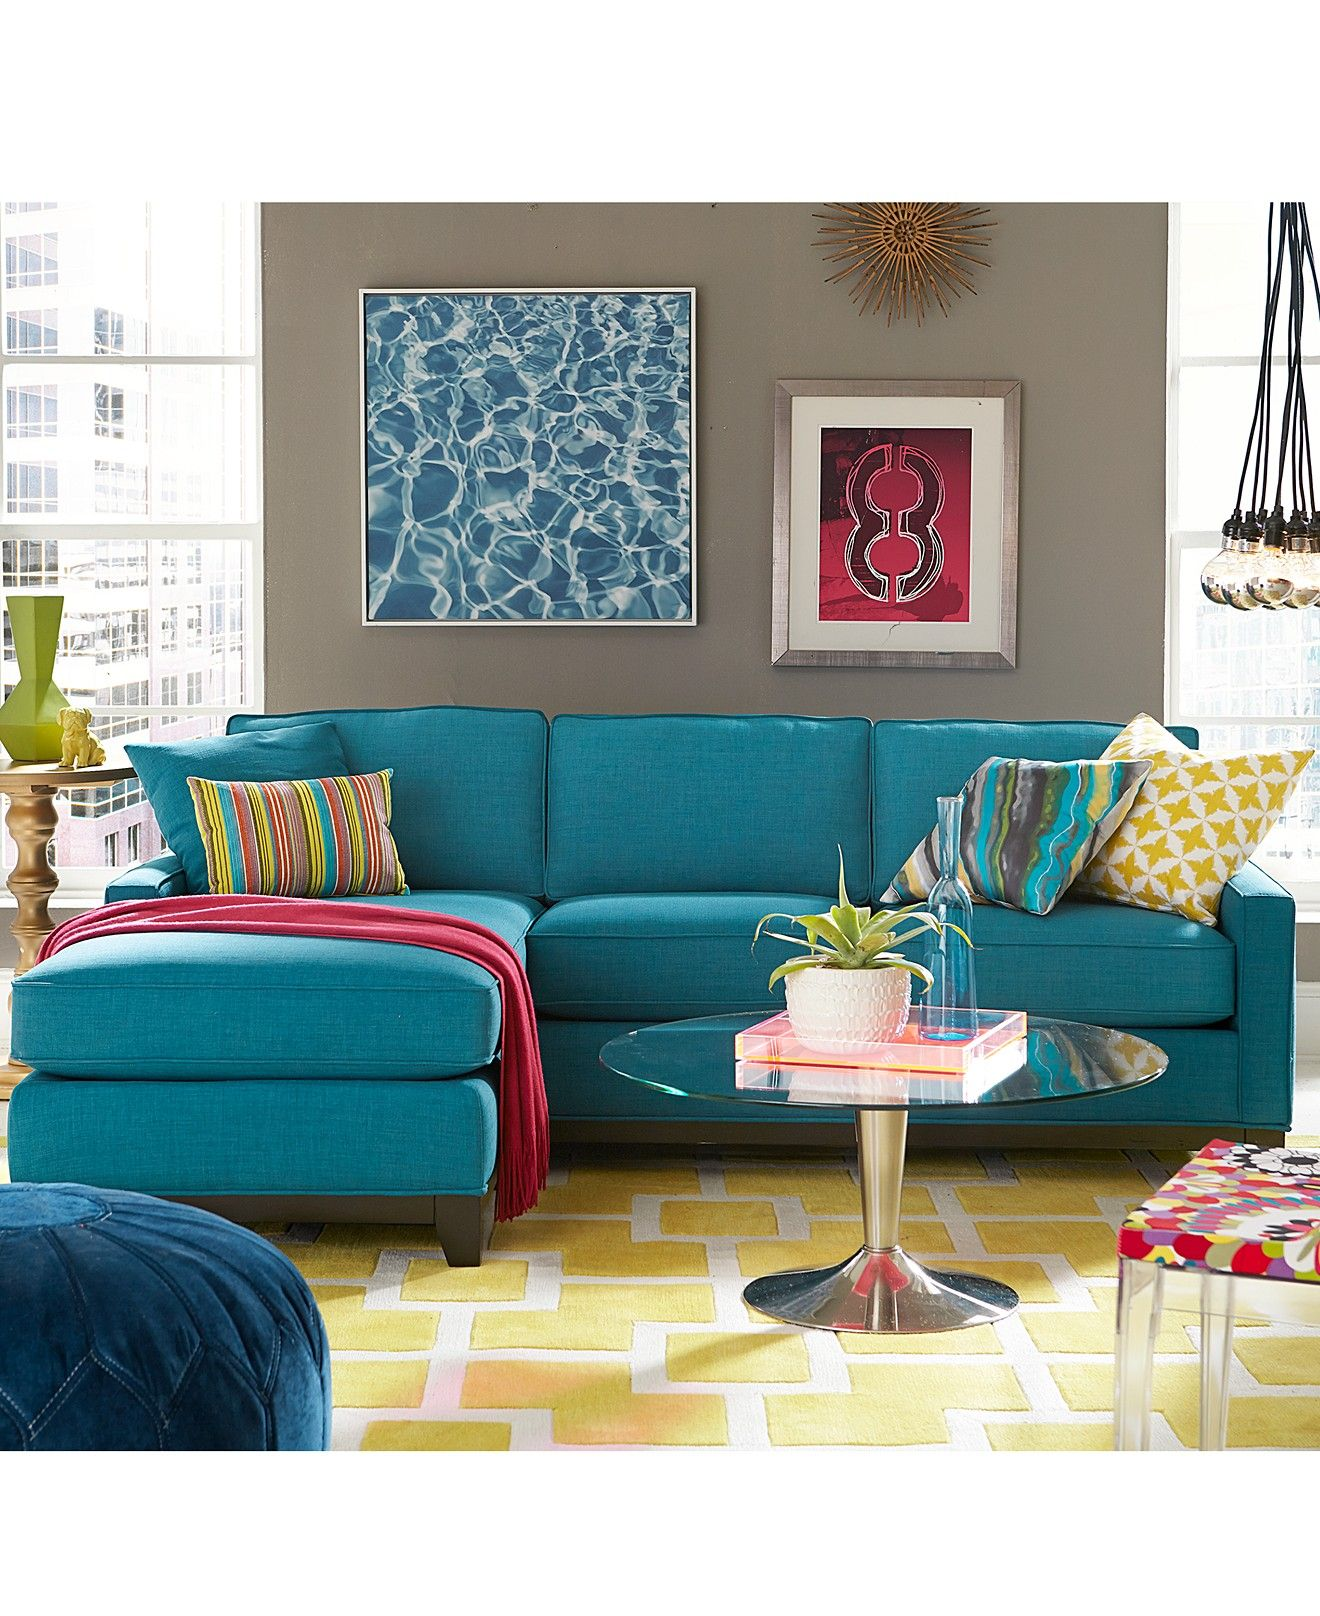 sectionals living sofas photos sectional blue velvet indigo room throughout furniture image denim royal center sofa